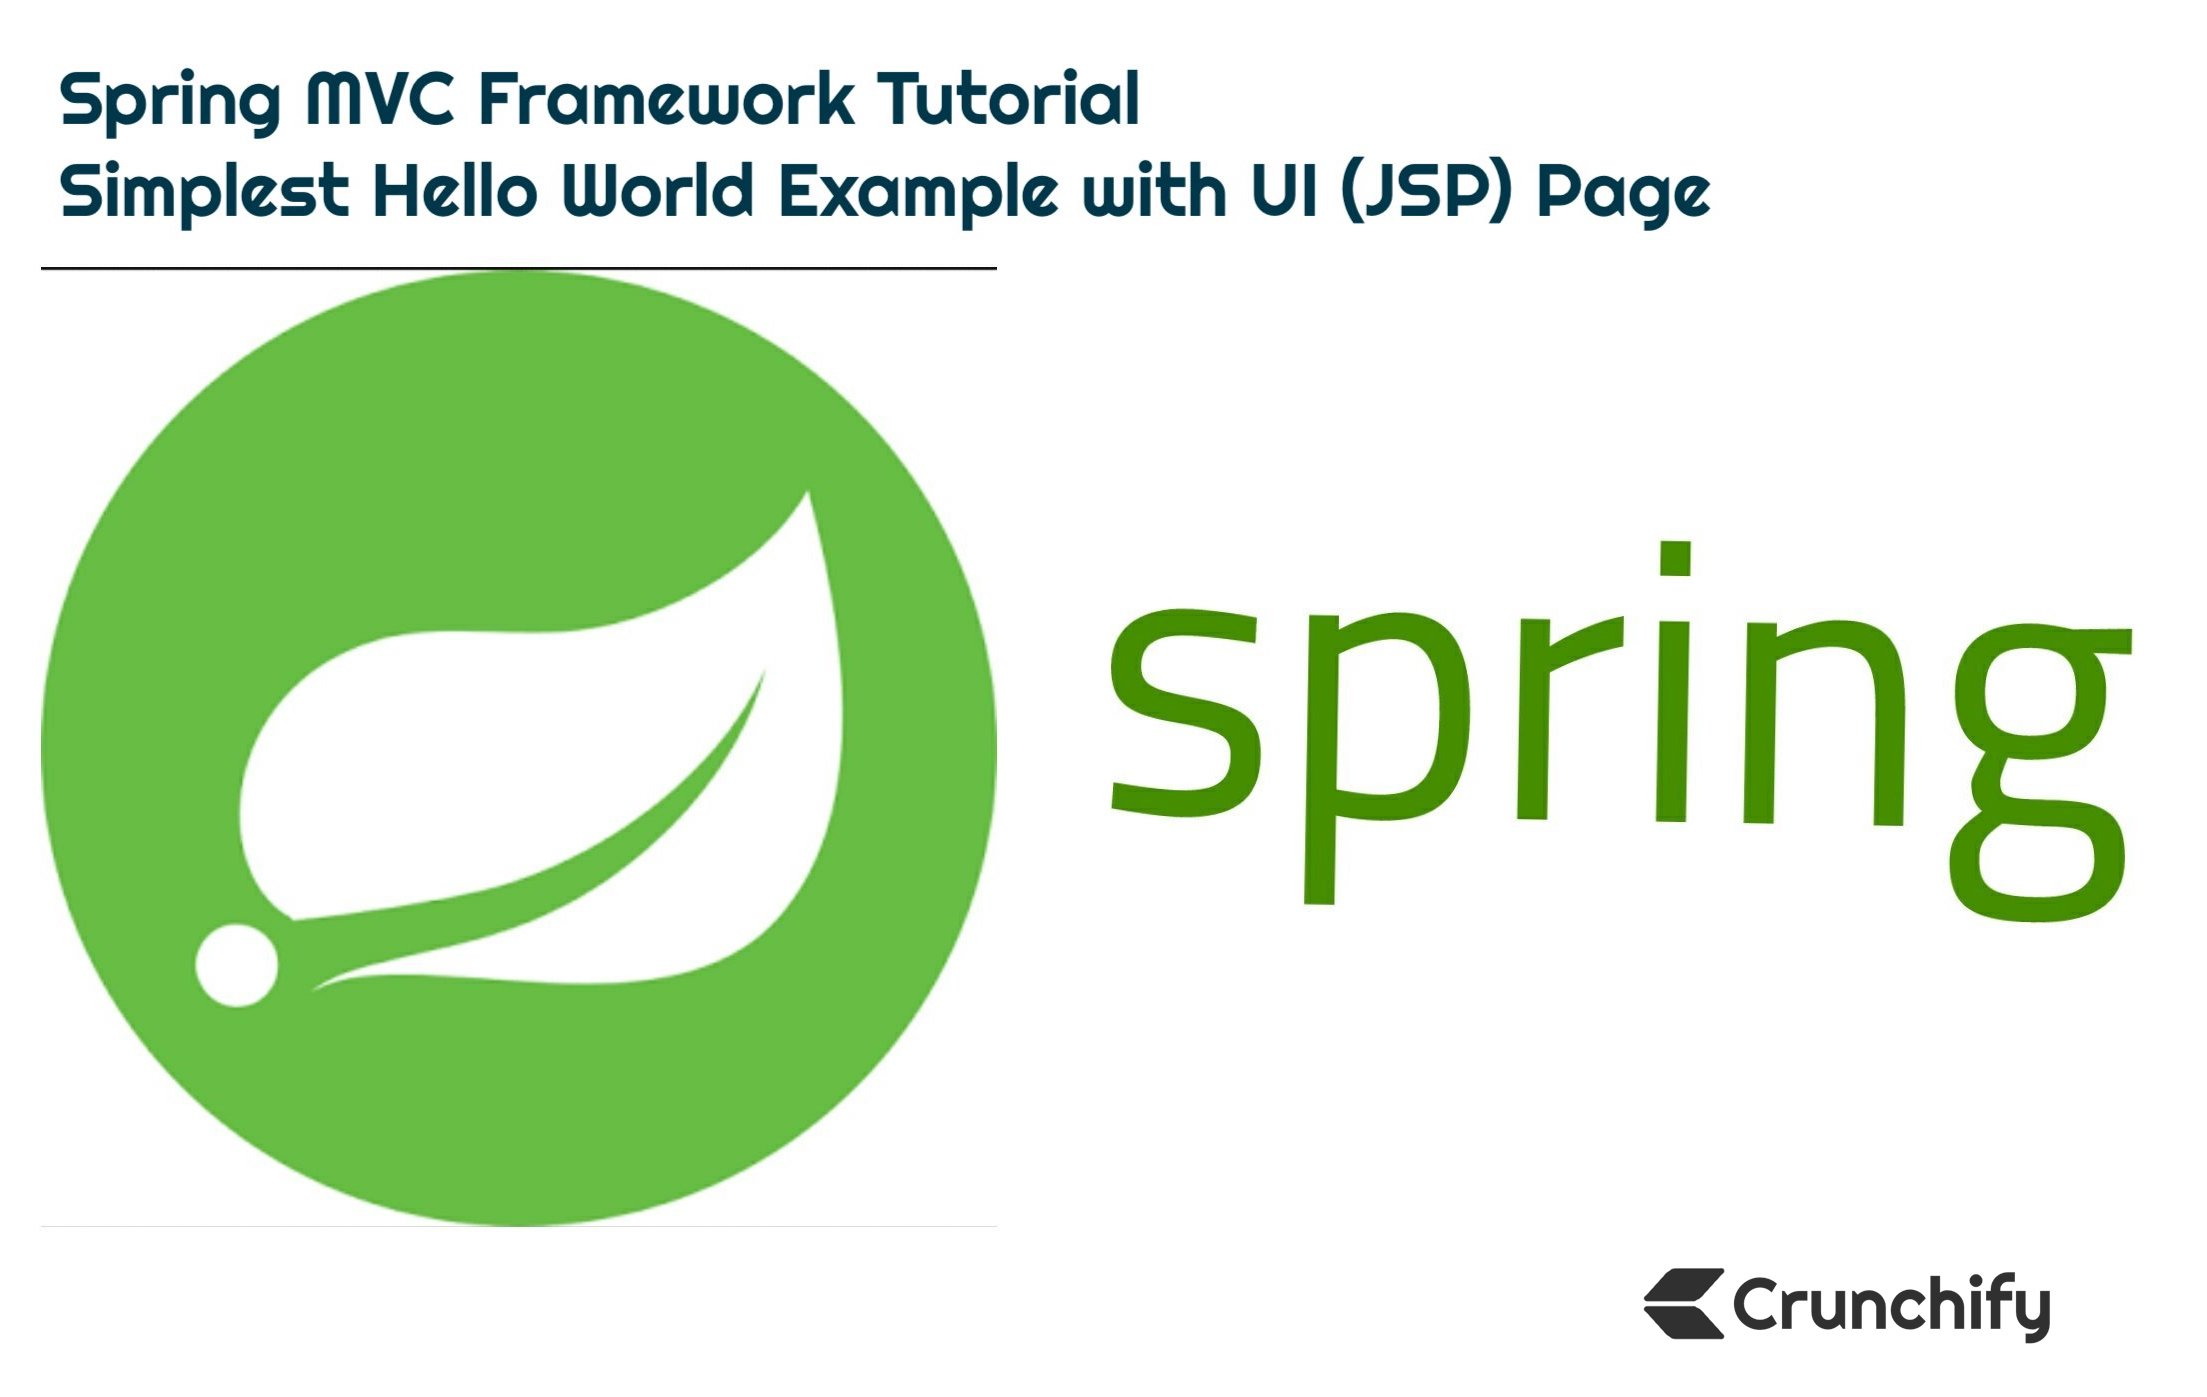 Spring Mvc Framework Tutorial Simplest Hello World Example